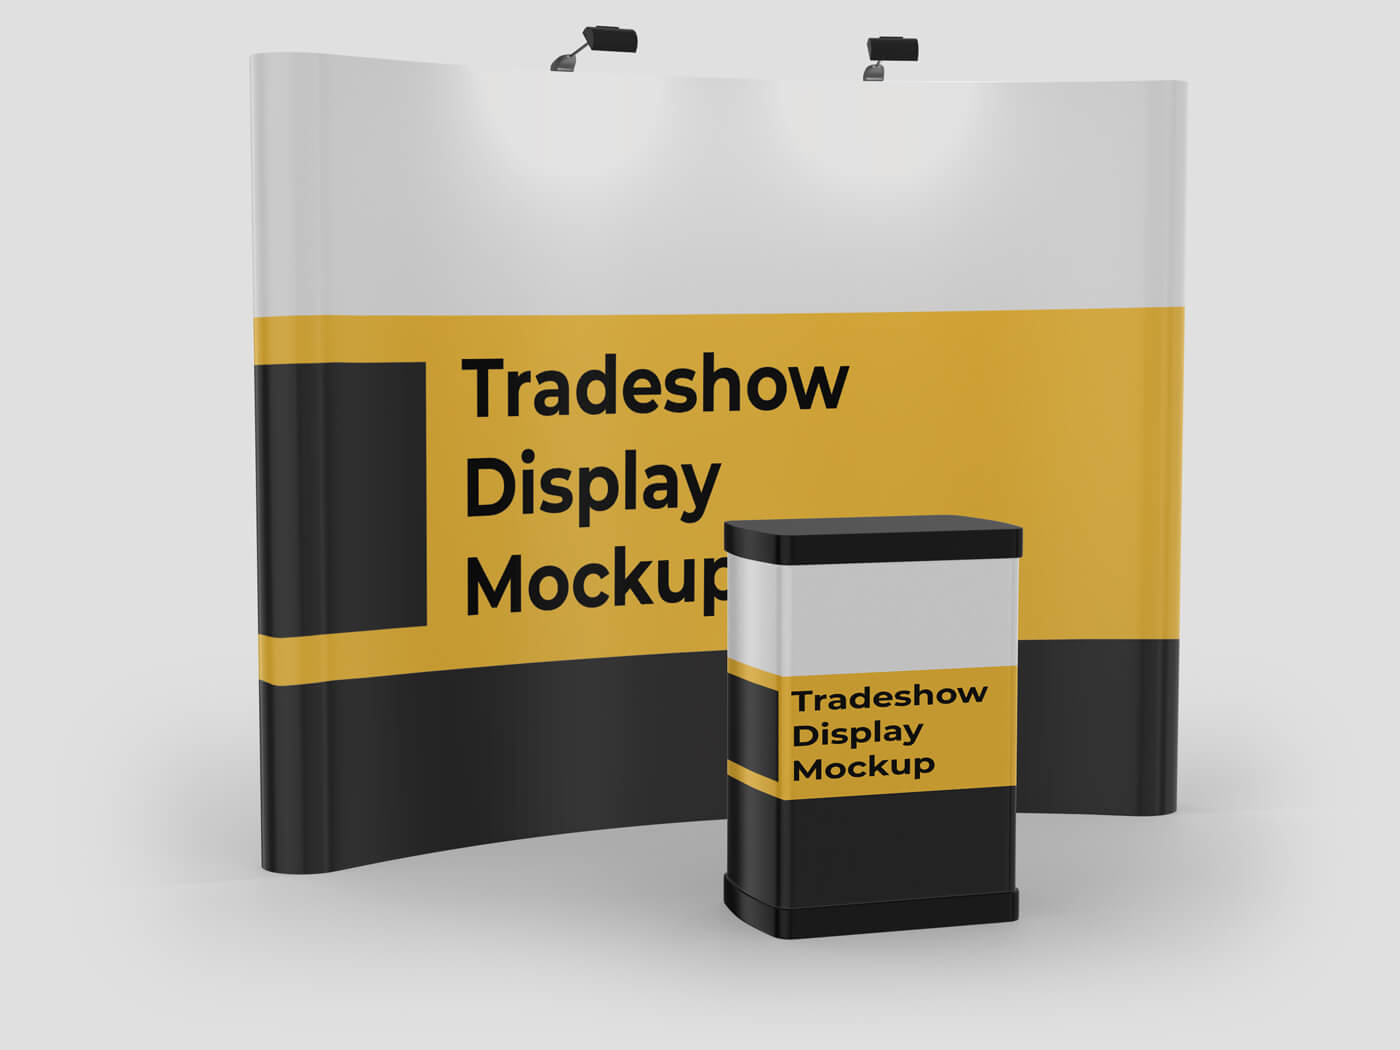 Tradeshow Display Mockup 1